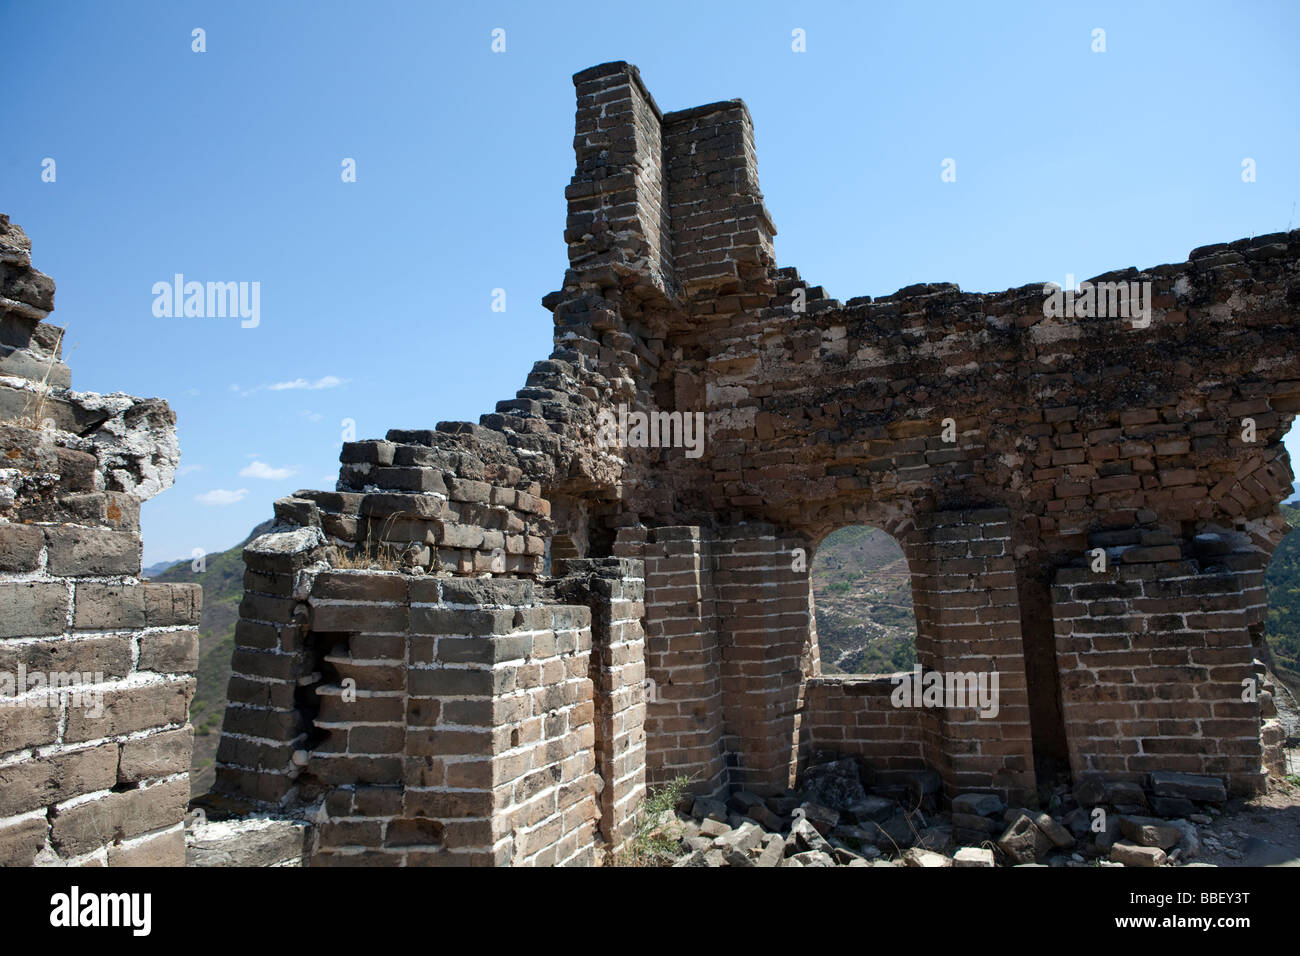 A broken wall is seen on the Great Wall near Beijing, China - Stock Image